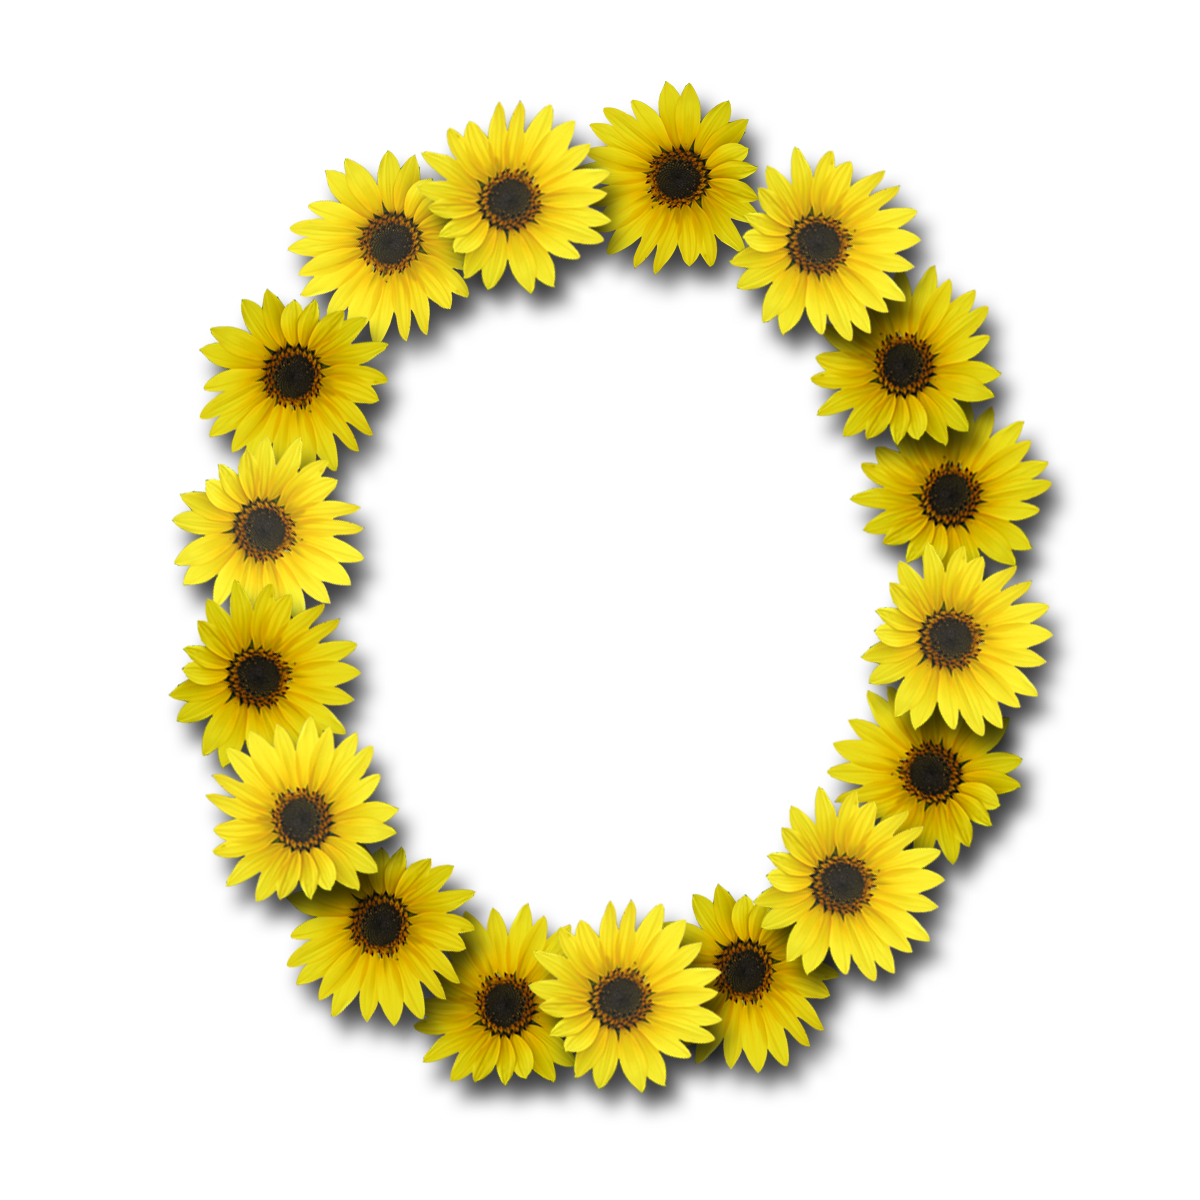 Capital Letter O1 Sunflower 1200x1200